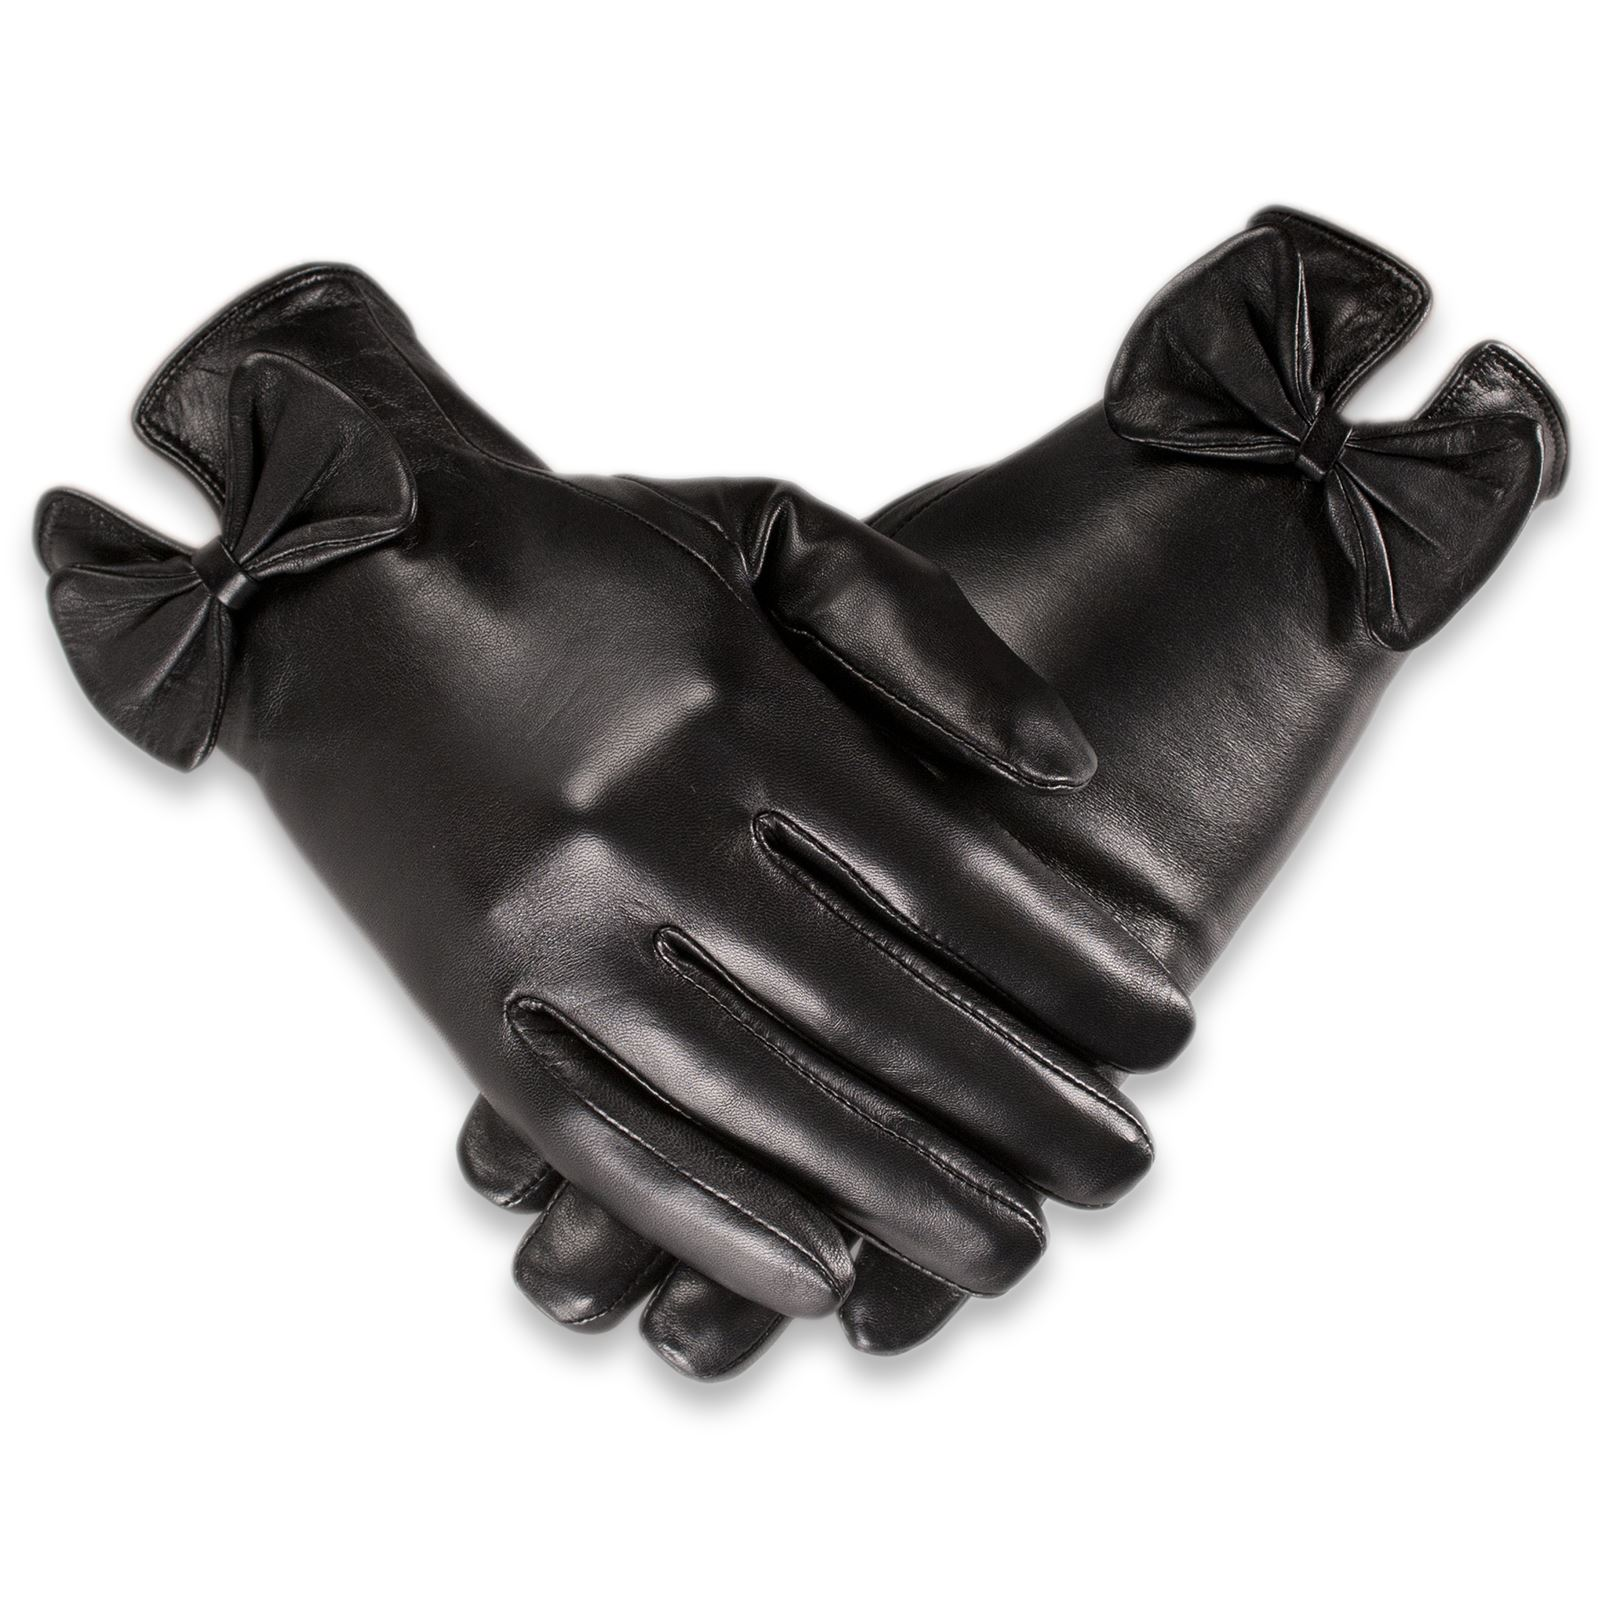 Ladies leather gloves wool lined - Black Leather Gloves Bow Quivano Ladies Leather Gloves Bow Cuff Fleece Lined